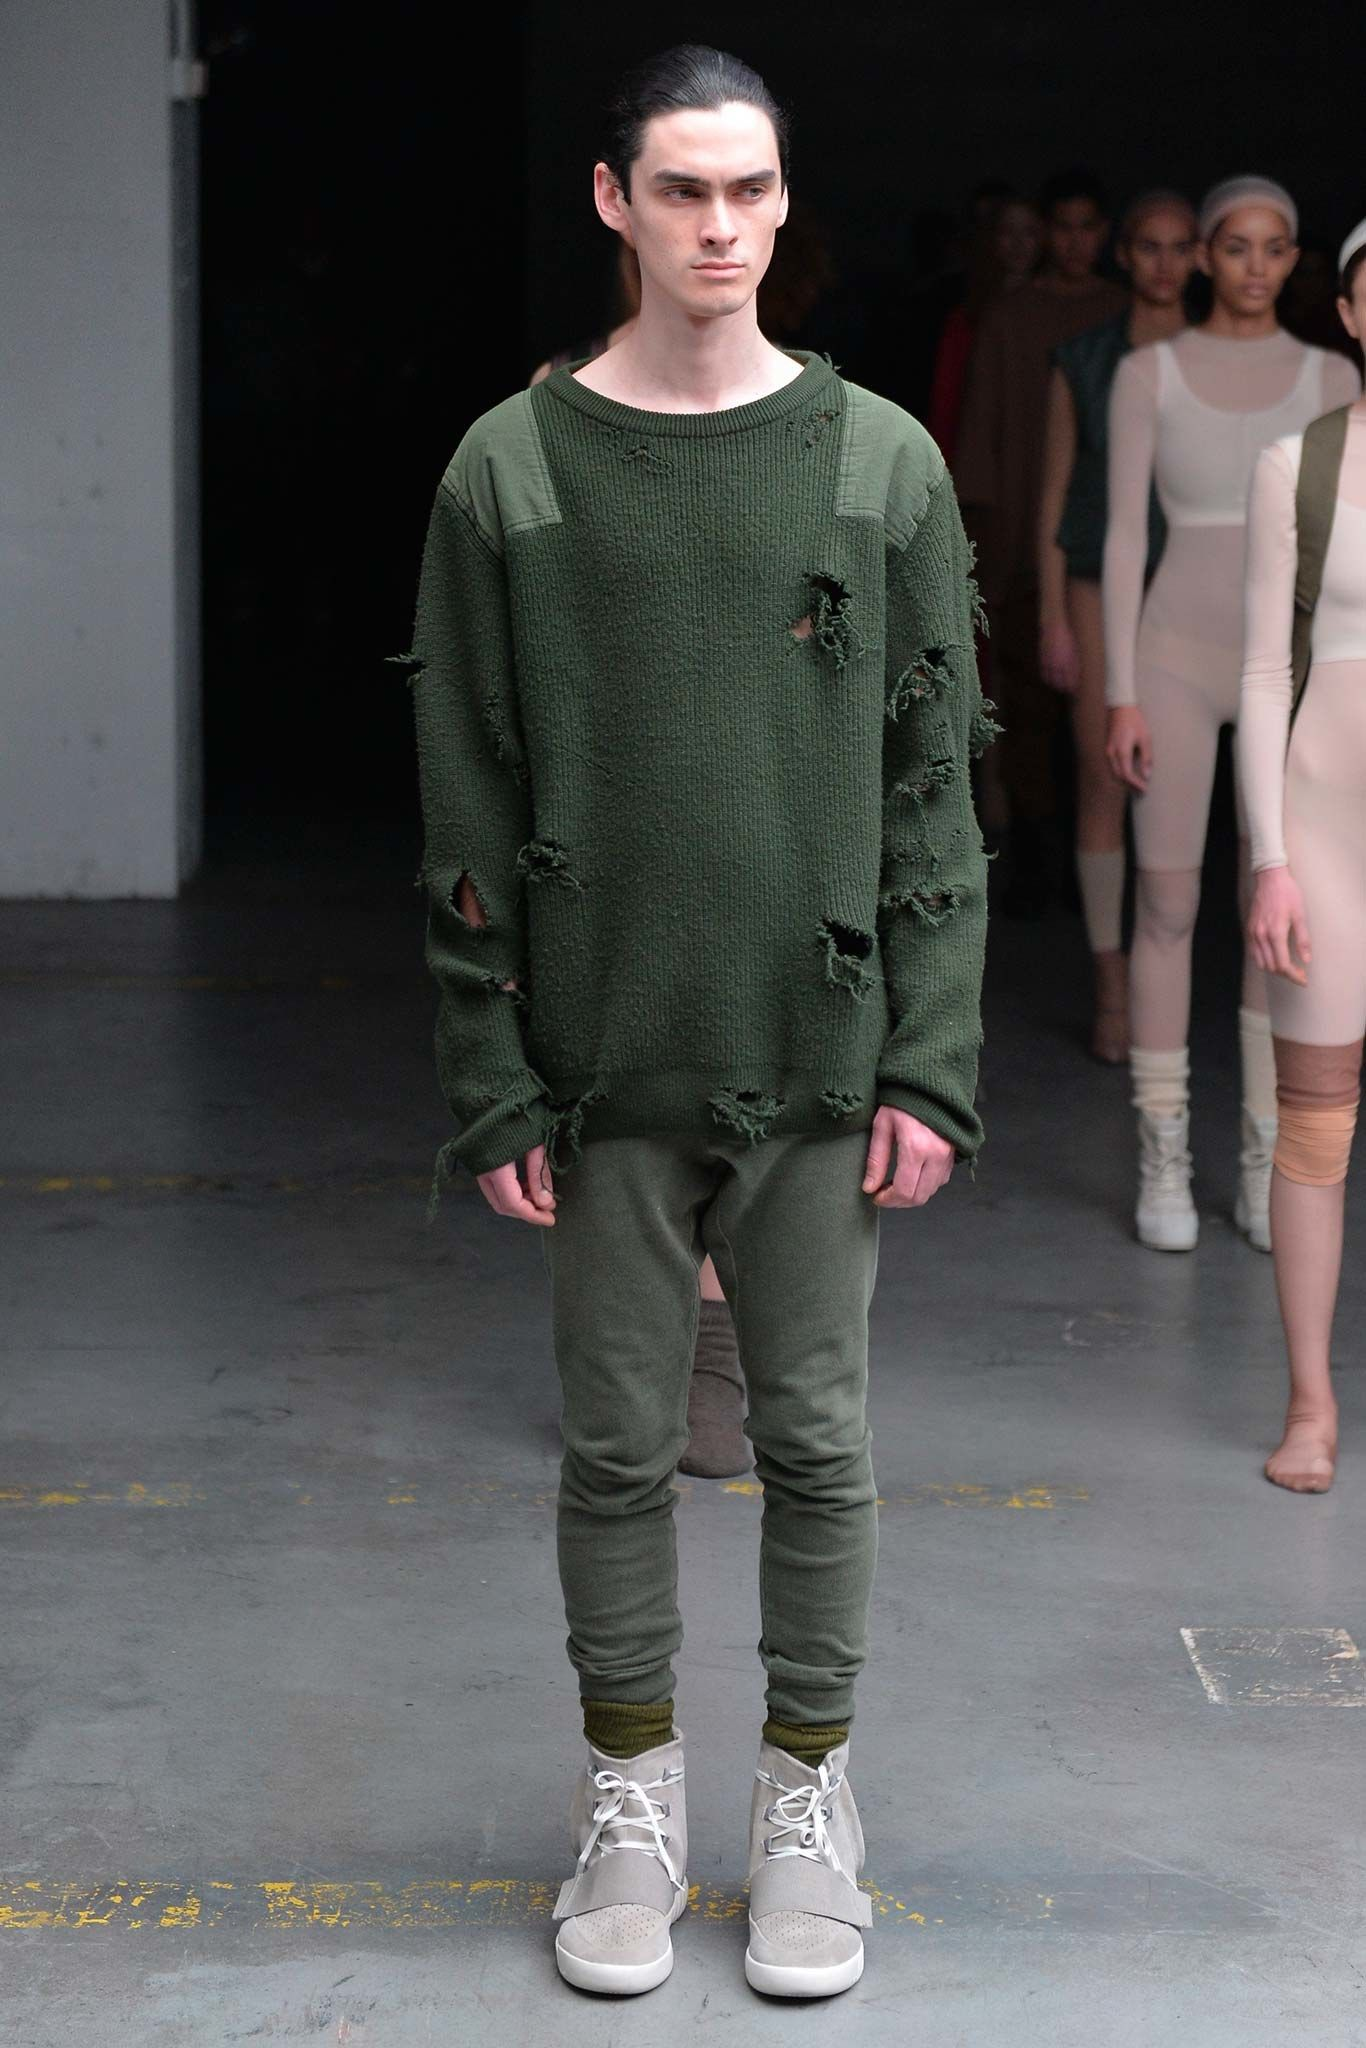 Kanye West X Adidas Originals Fall 2015 Menswear Fashion Show Yeezy Fashion Menswear Kanye West Adidas